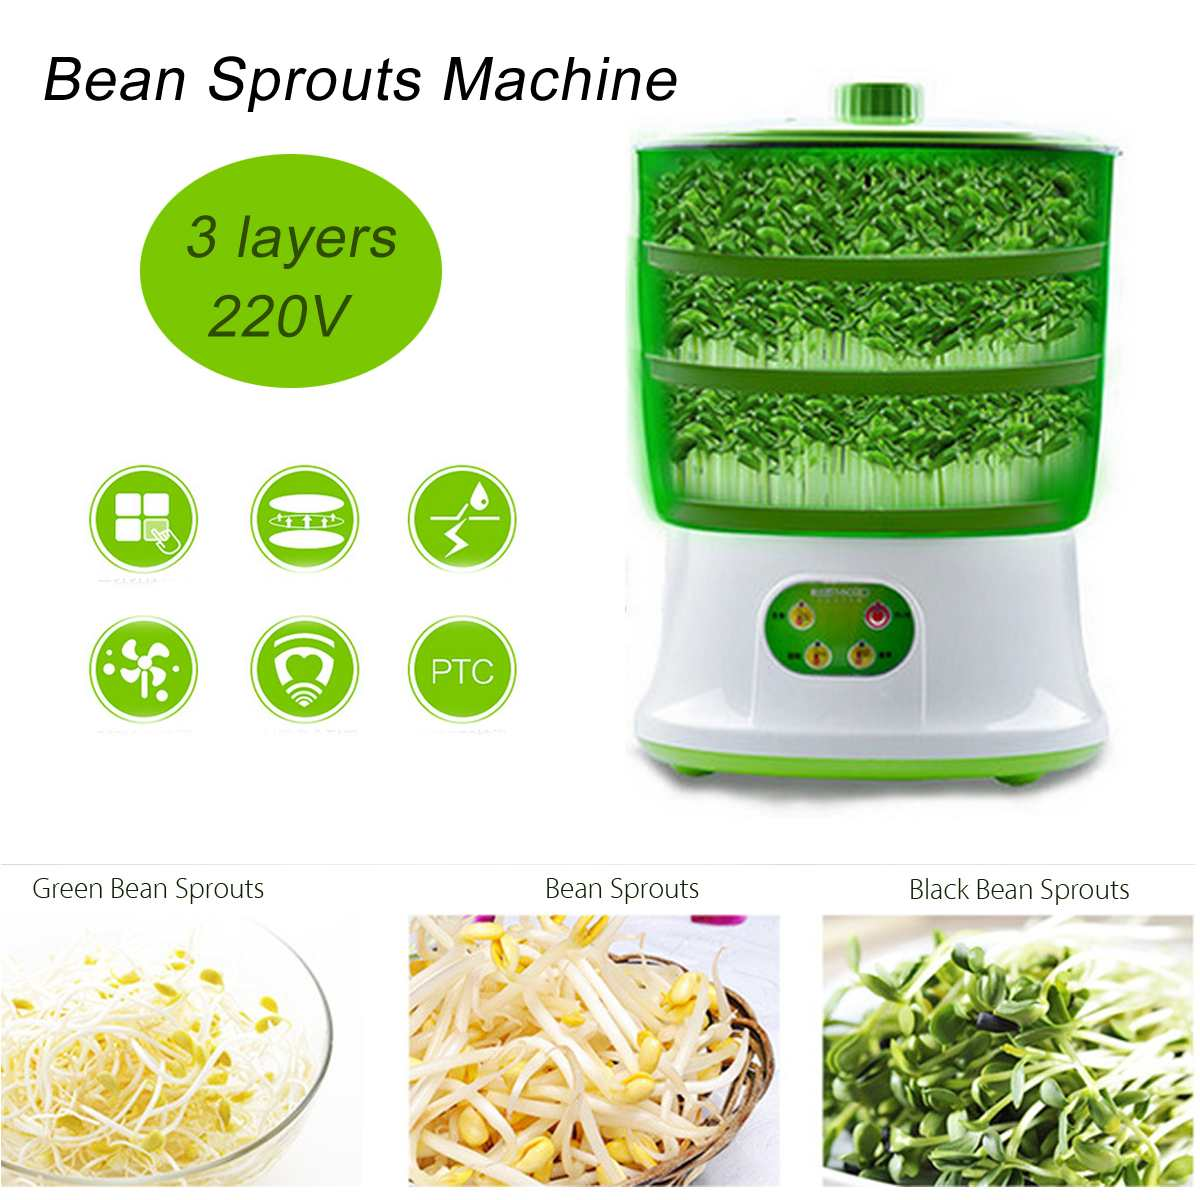 Warmtoo Intelligent 1.5L Three Layers Bean Sproutss Machine Automatic DIY Housemade Sprout Green Seeds Growing 220V 20W 26x35cmWarmtoo Intelligent 1.5L Three Layers Bean Sproutss Machine Automatic DIY Housemade Sprout Green Seeds Growing 220V 20W 26x35cm